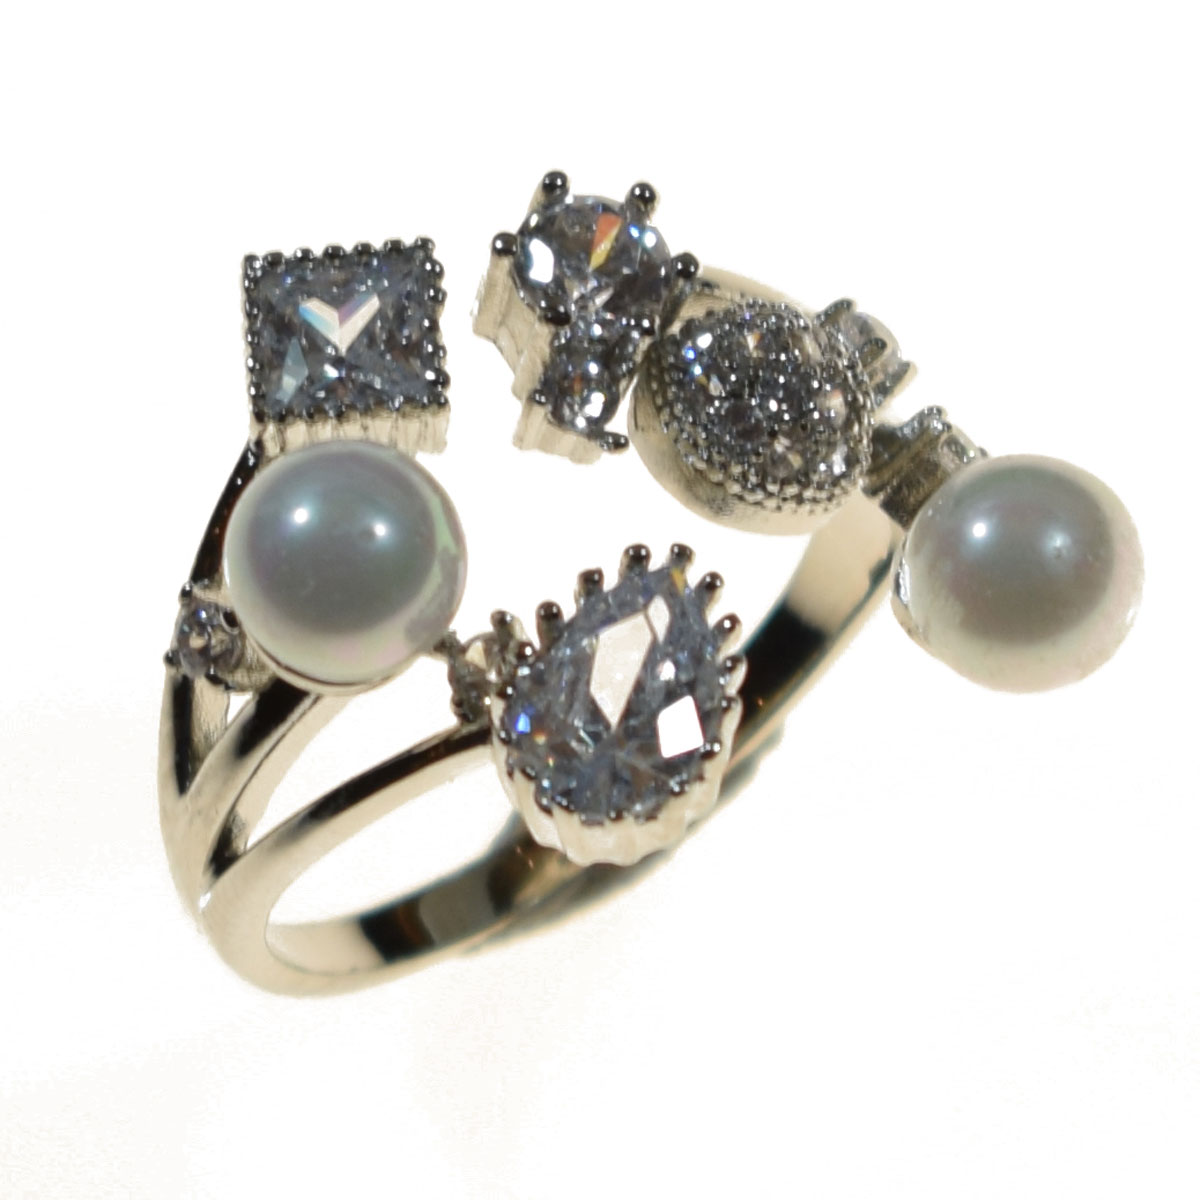 ring faux bijoux silver with pearls and crystals bz rg 00201